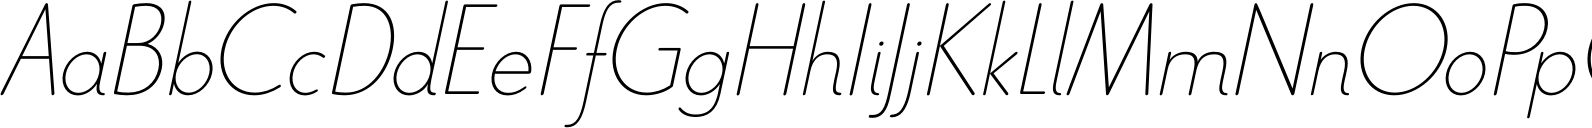 Le Havre Rounded Thin Italic Font